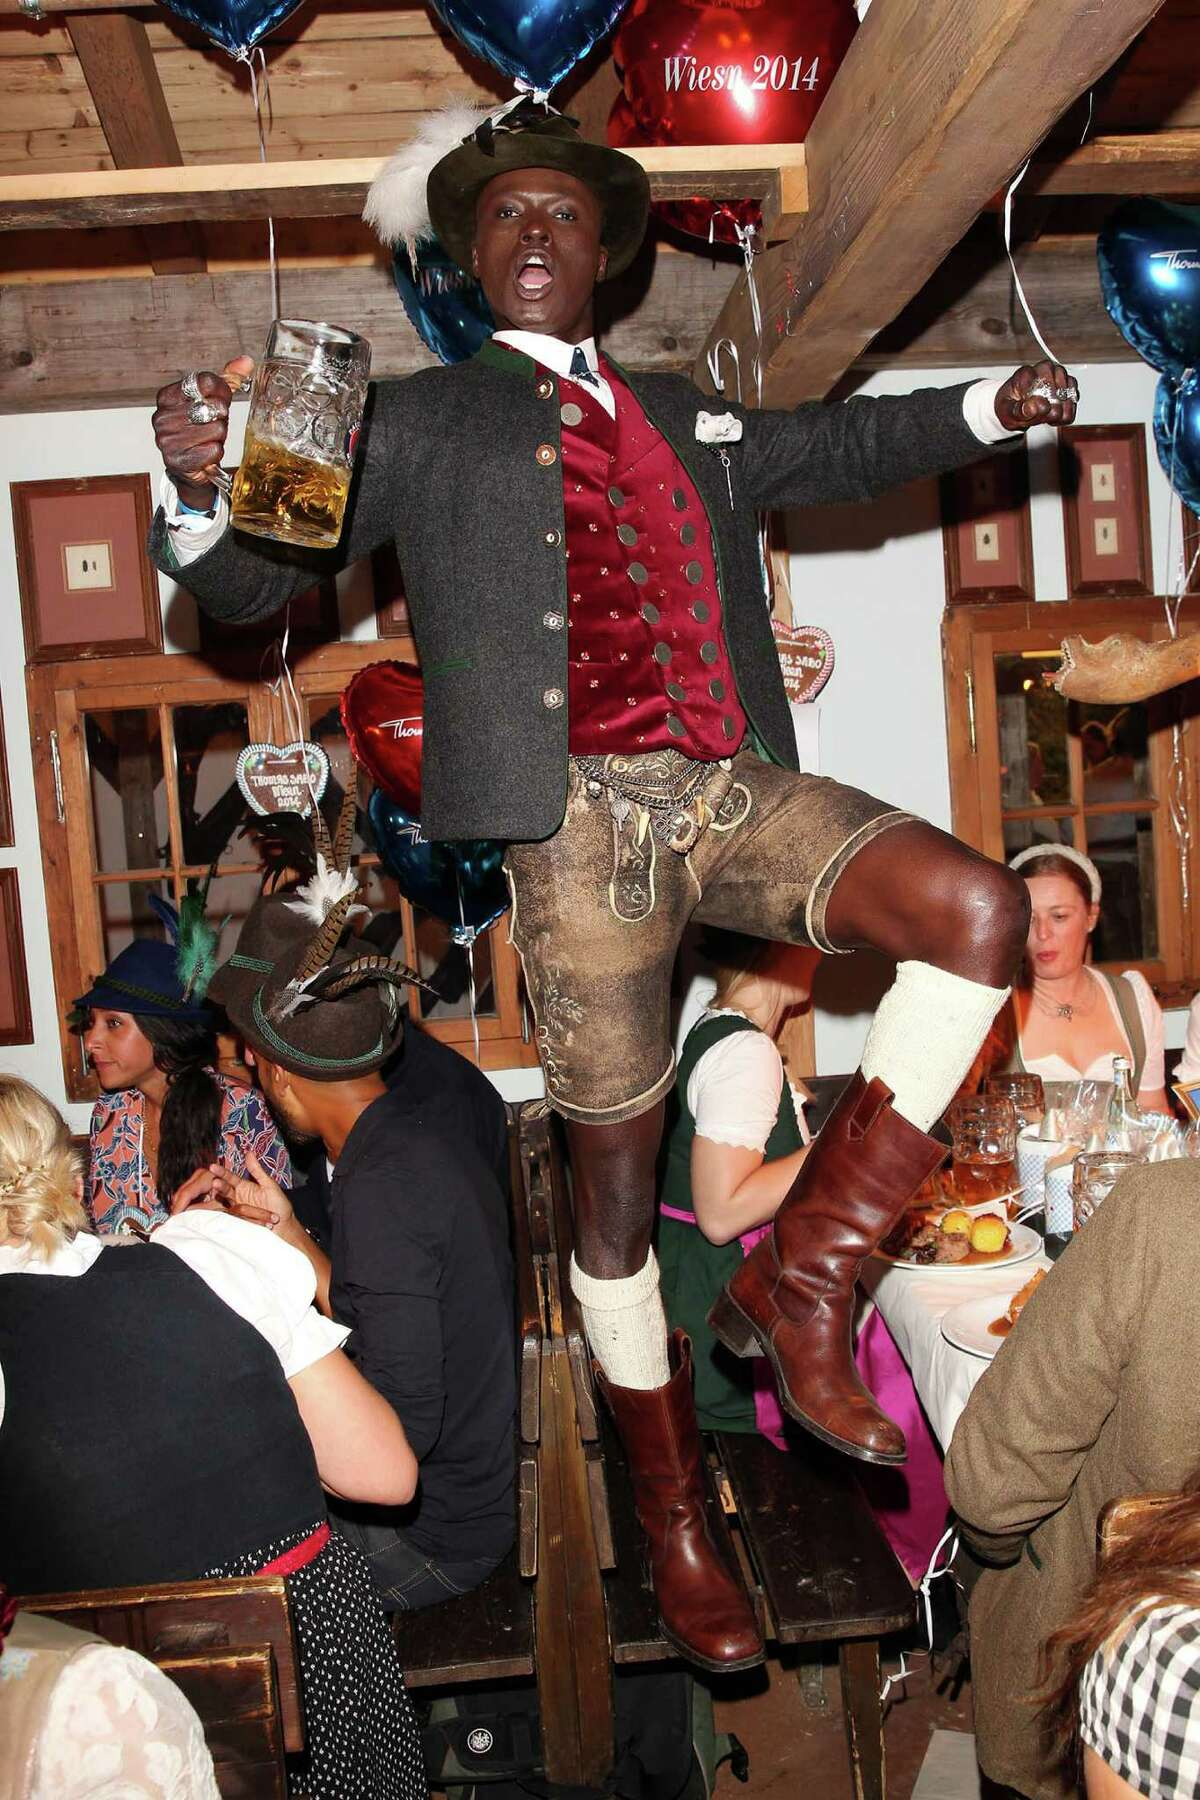 Papis Loveday attends the Thomas Sabo Wiesn during Oktoberfest at Theresienwiese on September 23, 2014 in Munich, Germany.